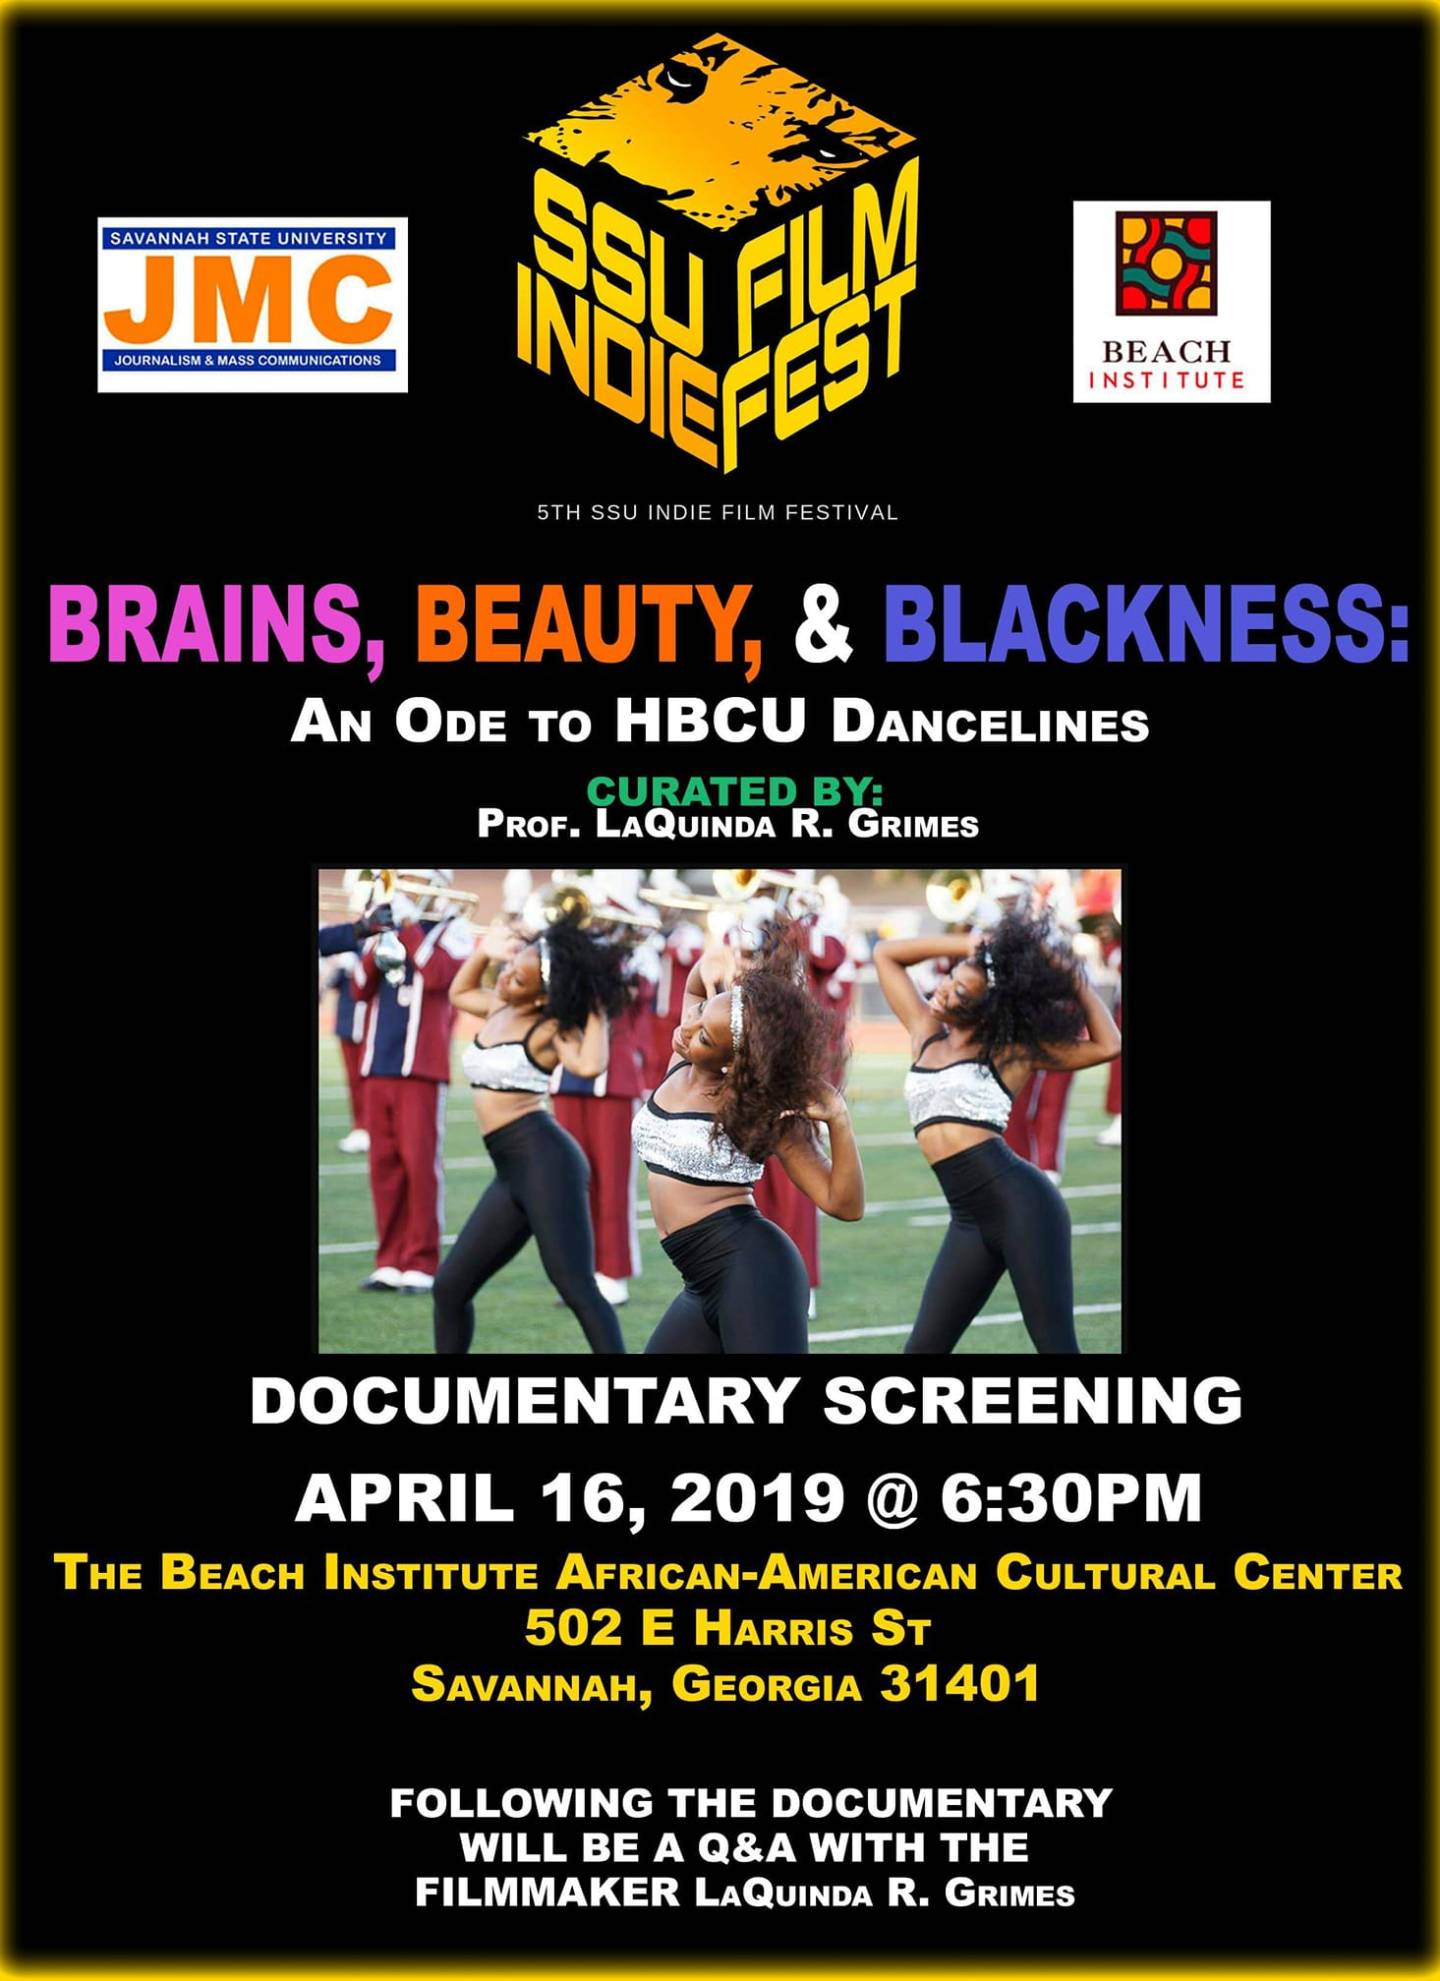 57019506_2178151342281254_4319309529956220928_o-1440x1981 HBCU Arts: Savannah State University Film Fest Bolsters the Next Generation of Film Makers